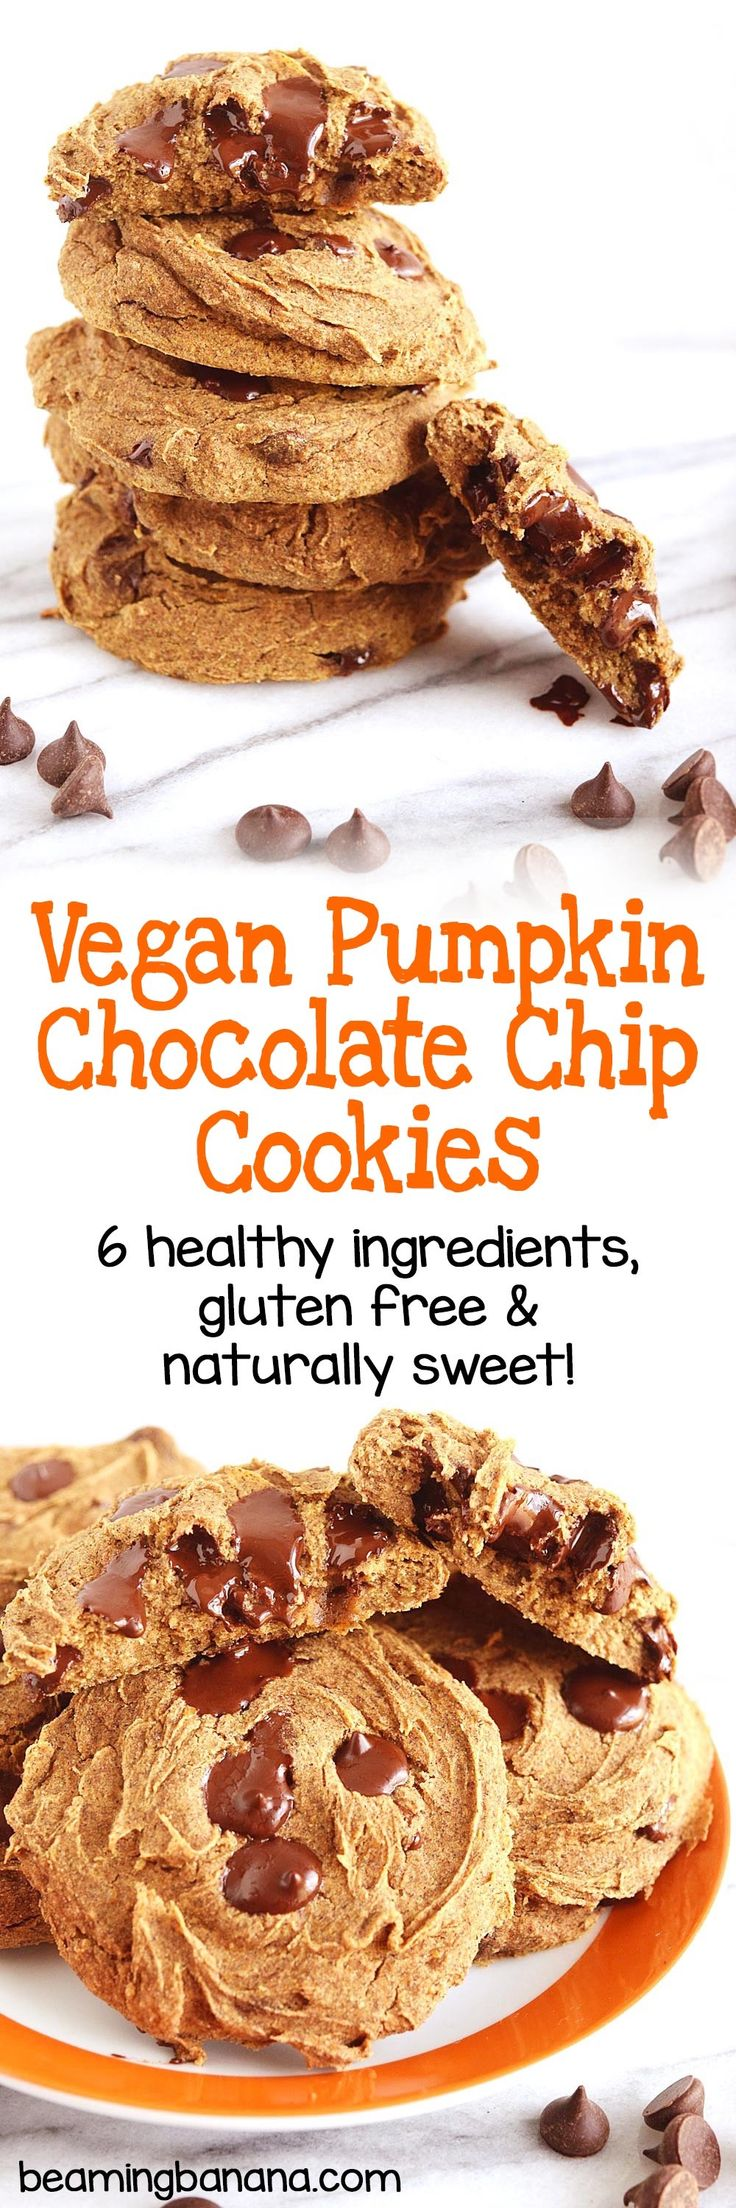 These vegan pumpkin chocolate chip cookies are the perfect combination of a chocolate chip cookie and the pumpkin spice flavors of fall! 6 healthy ingredients, gluten free and naturally sweetened.